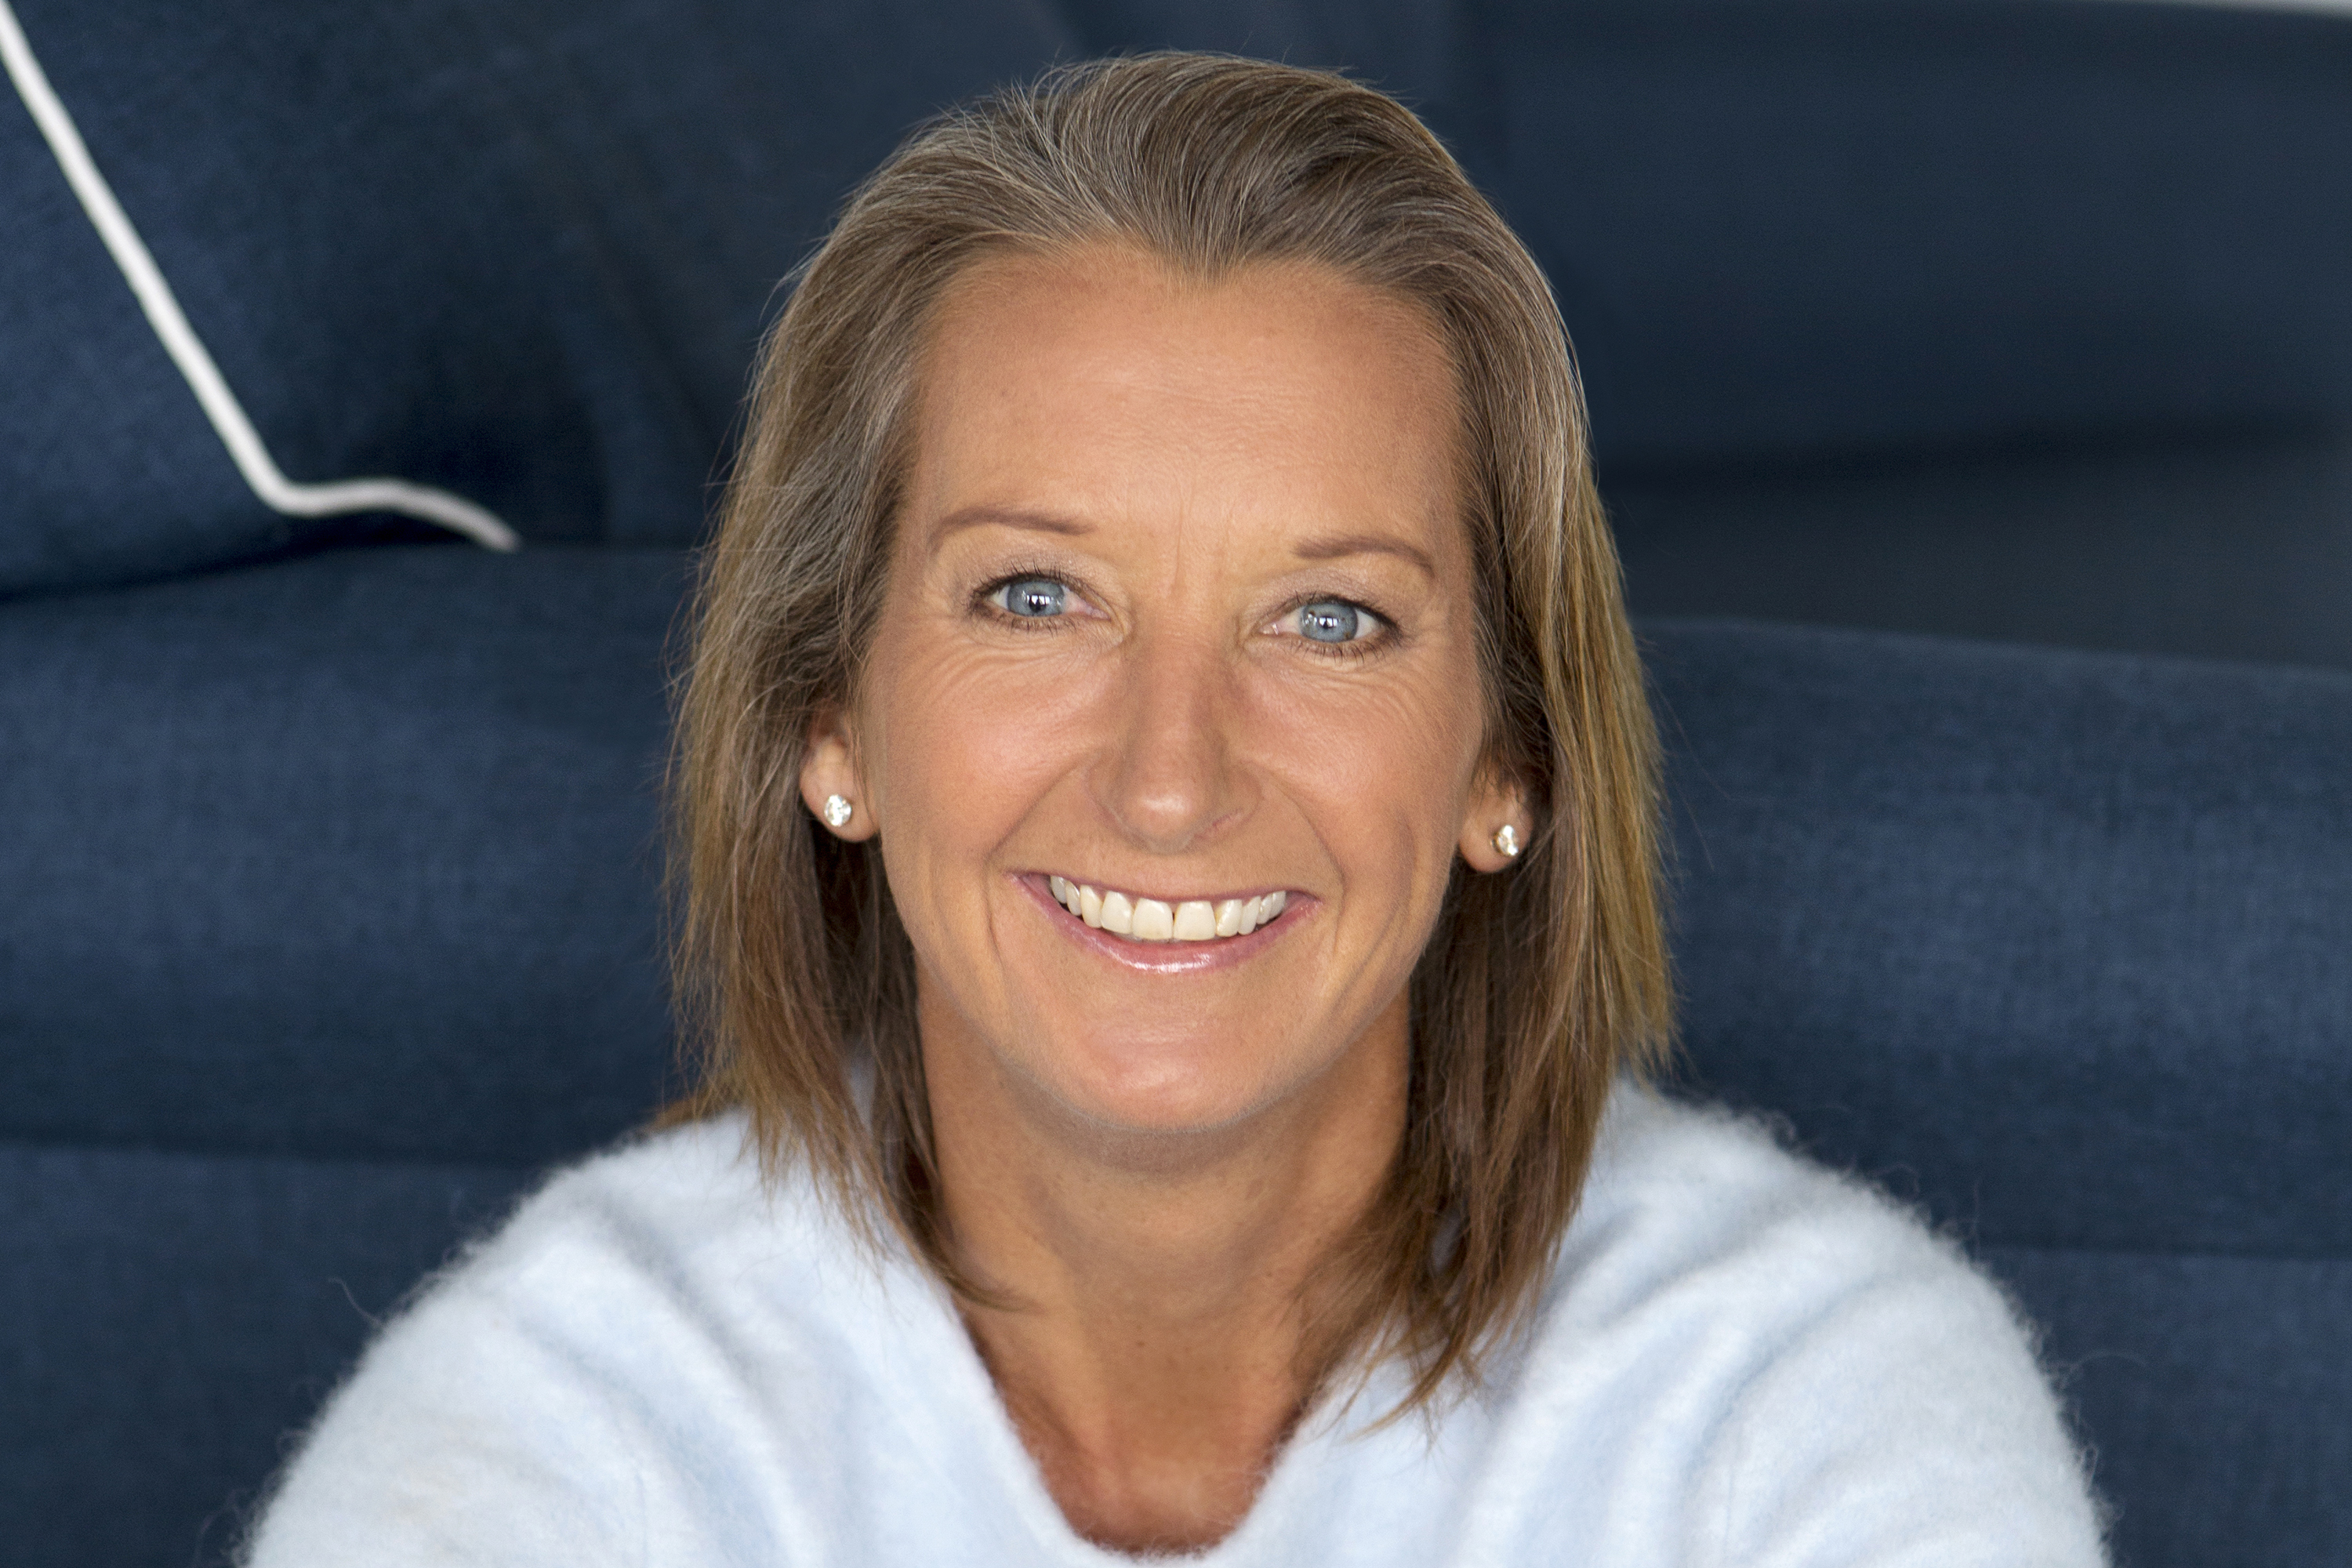 Speakers related to John Longmire: Layne Beachley